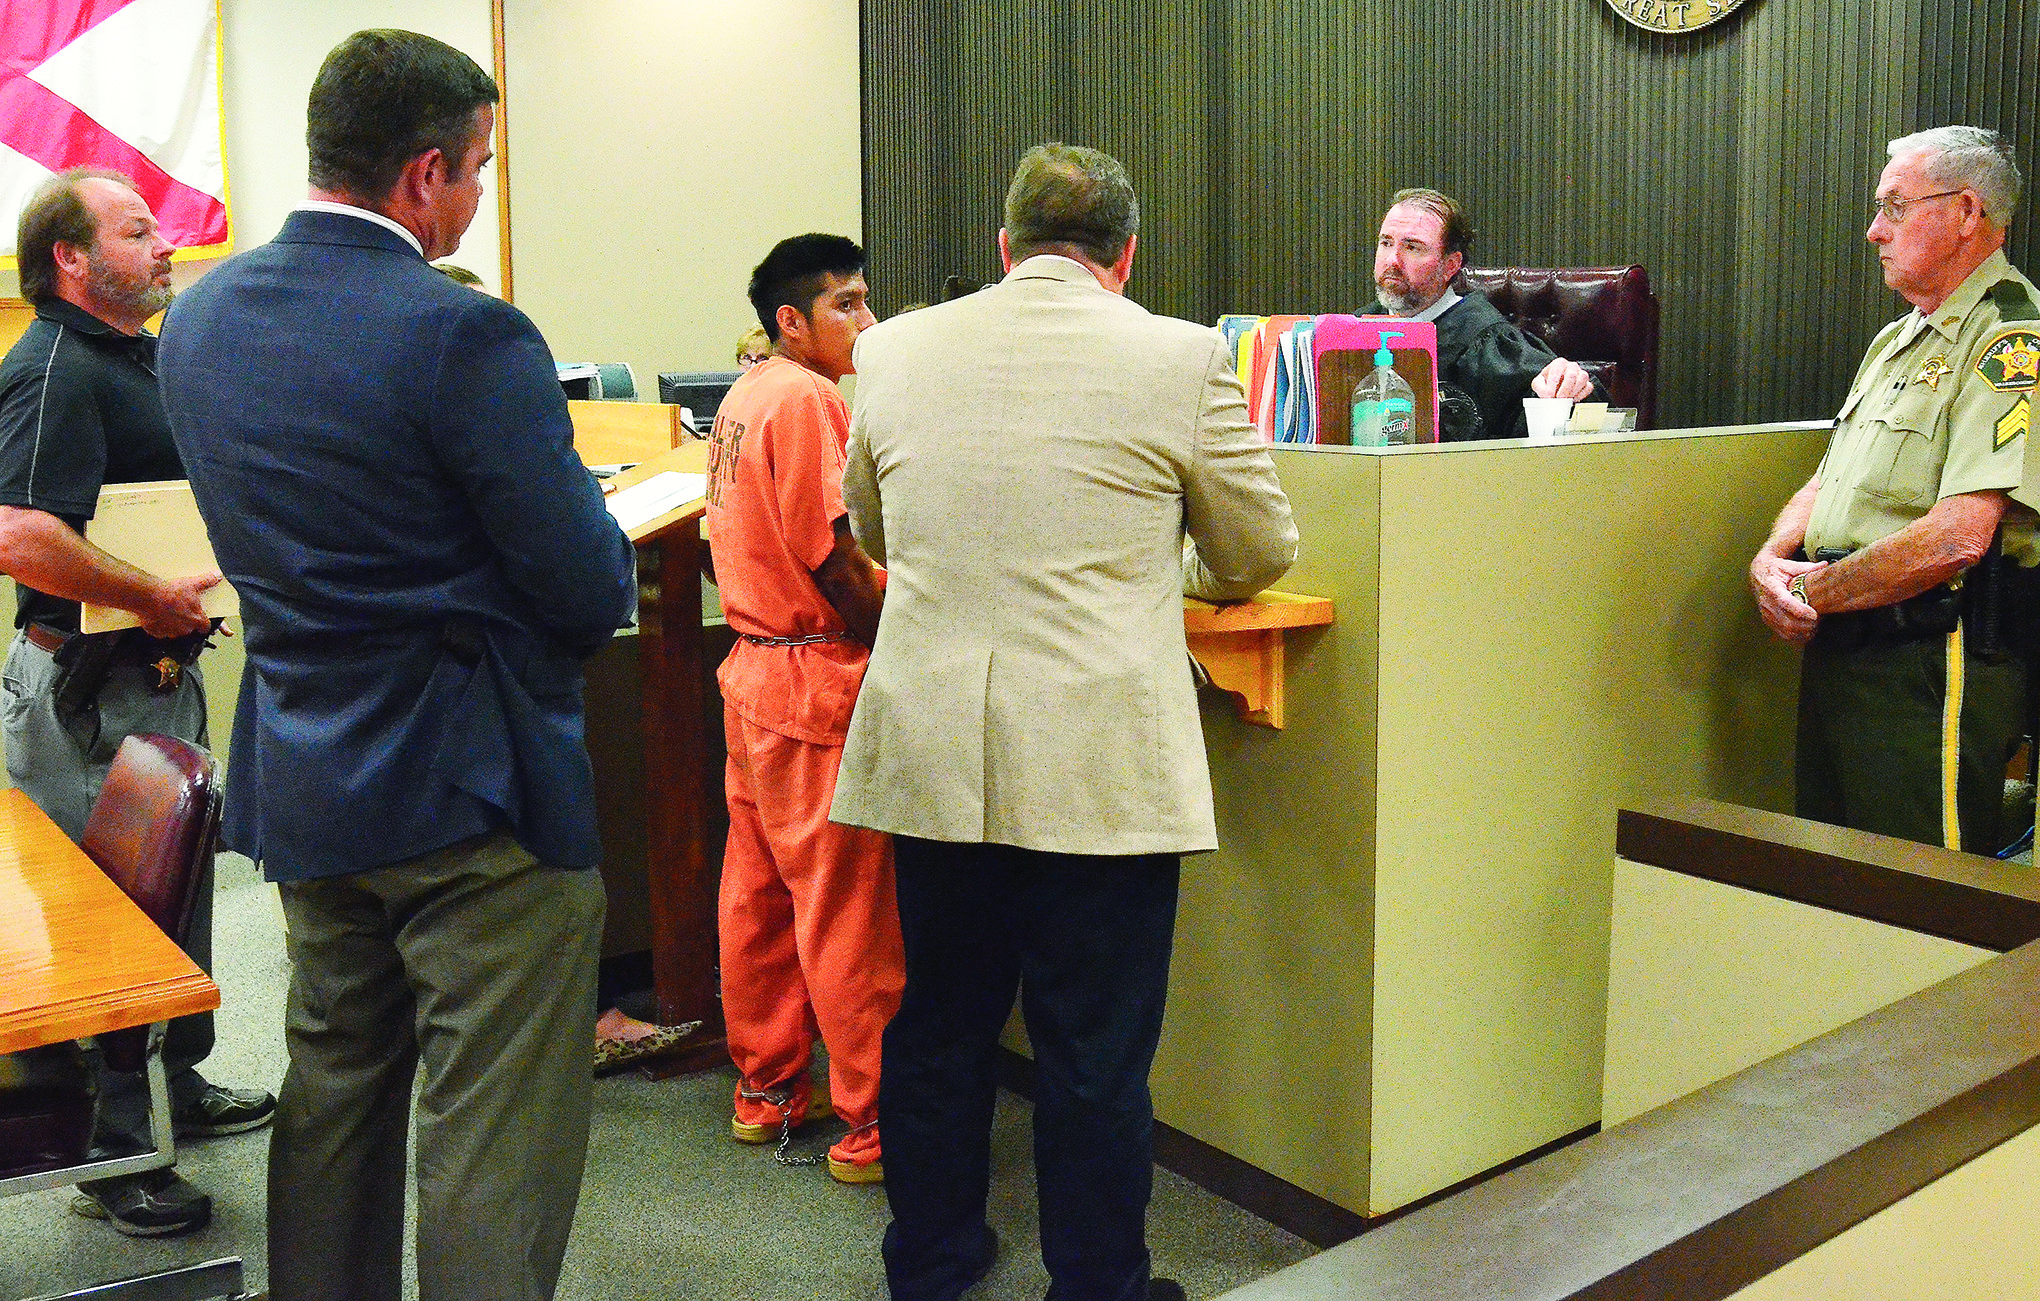 Bernardo Castro-Gabriel, who's charged with an attempted kidnapping Wednesday afternoon at Gamble Park in Jasper, appears before District Court Judge Henry Allred Friday afternoon for a bond hearing.